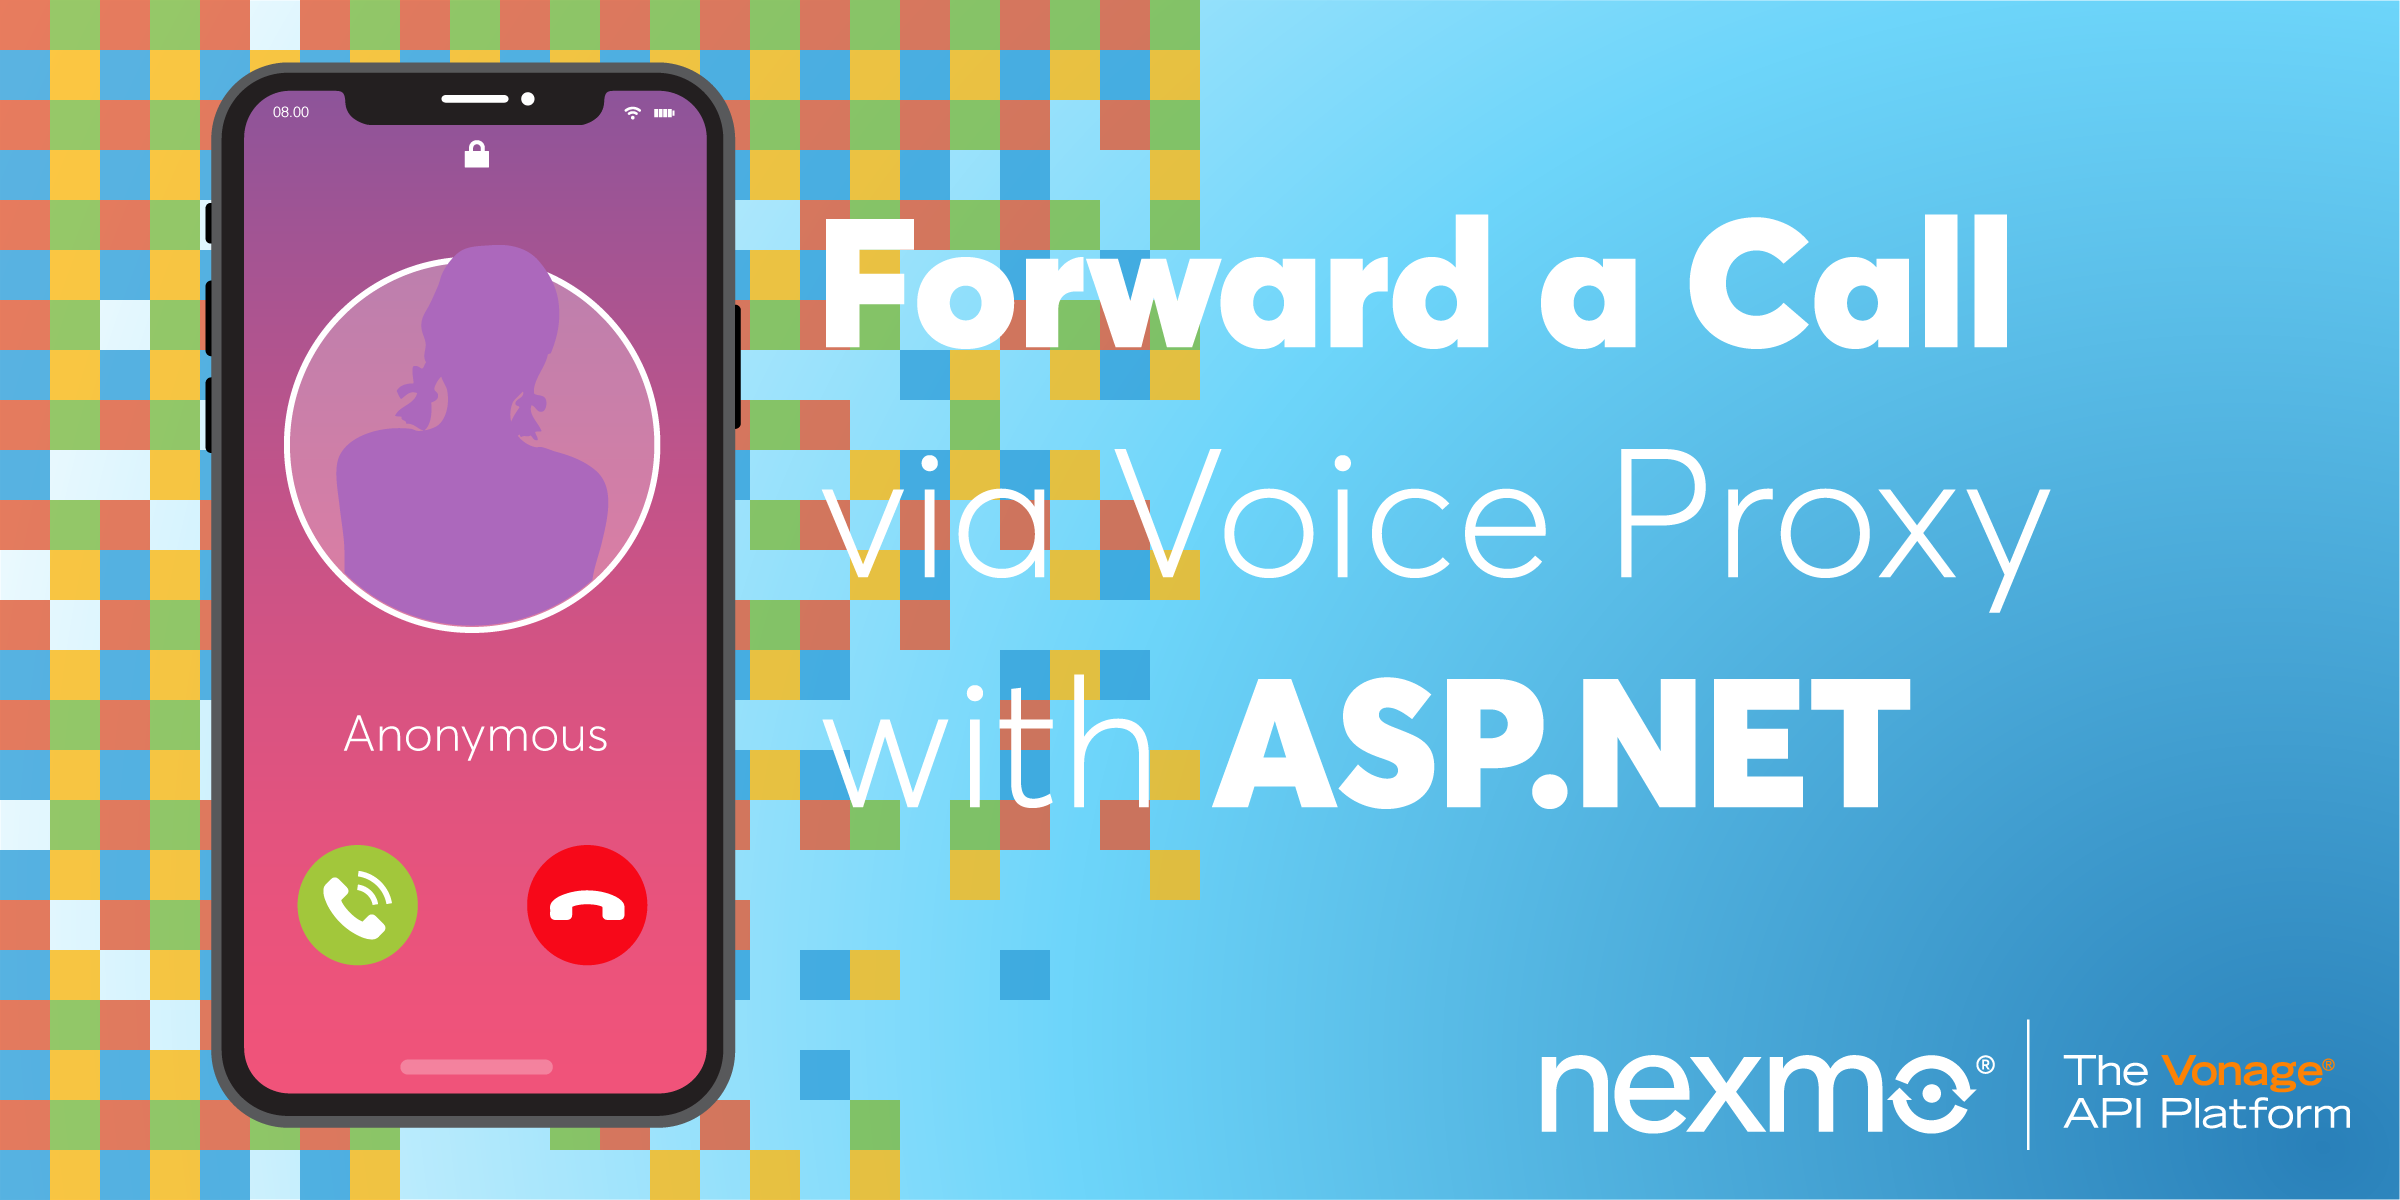 Forward a Call via Voice Proxy with ASP NET Core - Nexmo